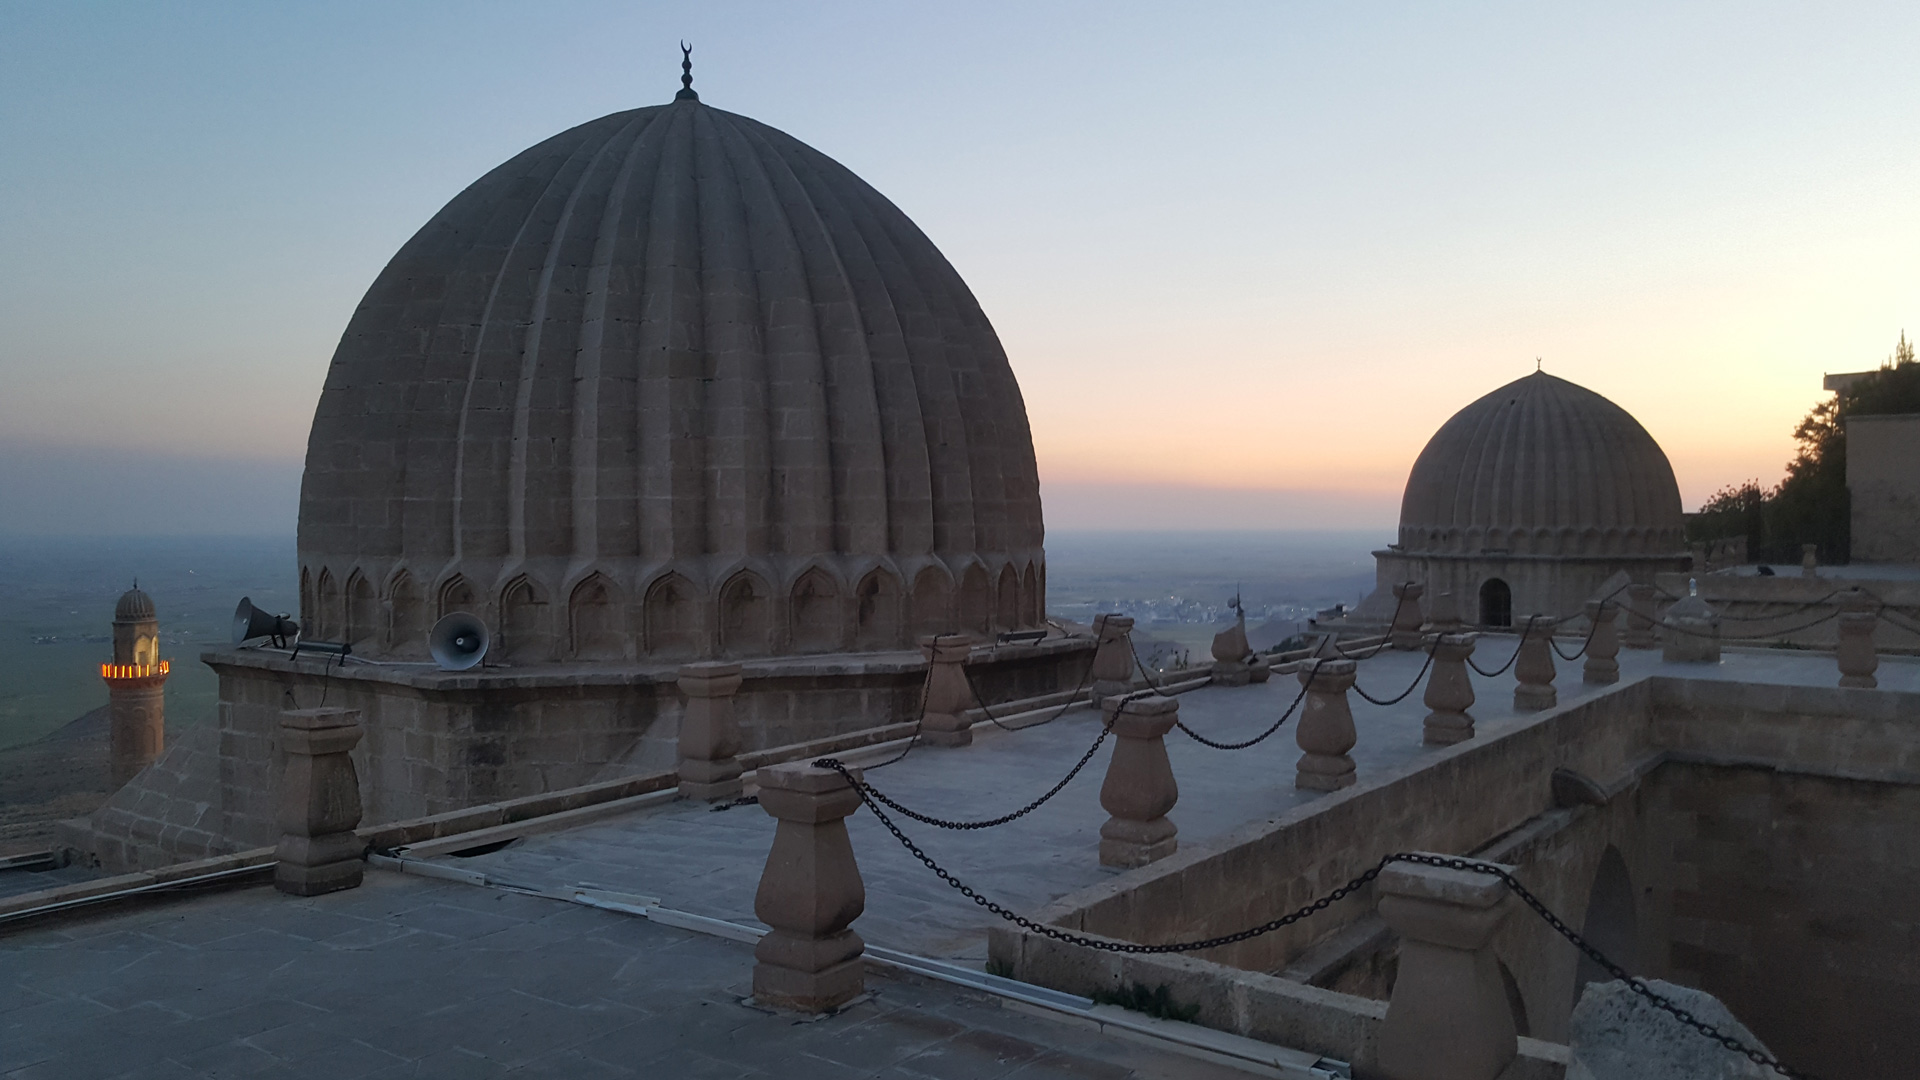 Zinciriye (Sultan İsa) Madrasa in the historical part of Mardin